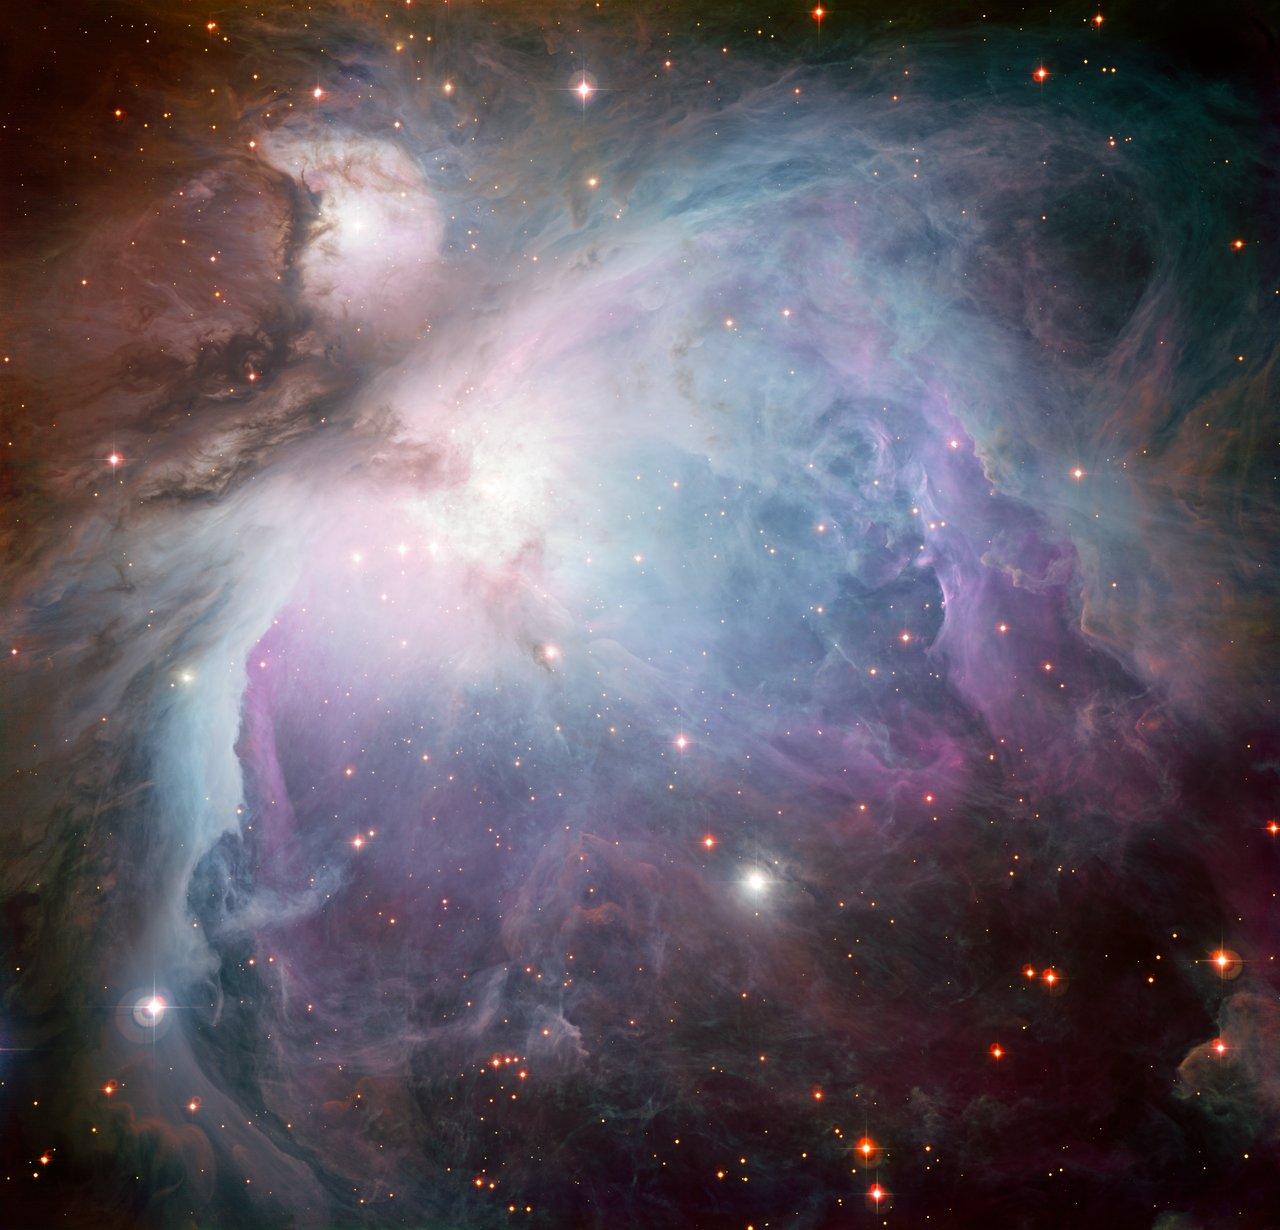 Mounted image 125: The Orion Nebula